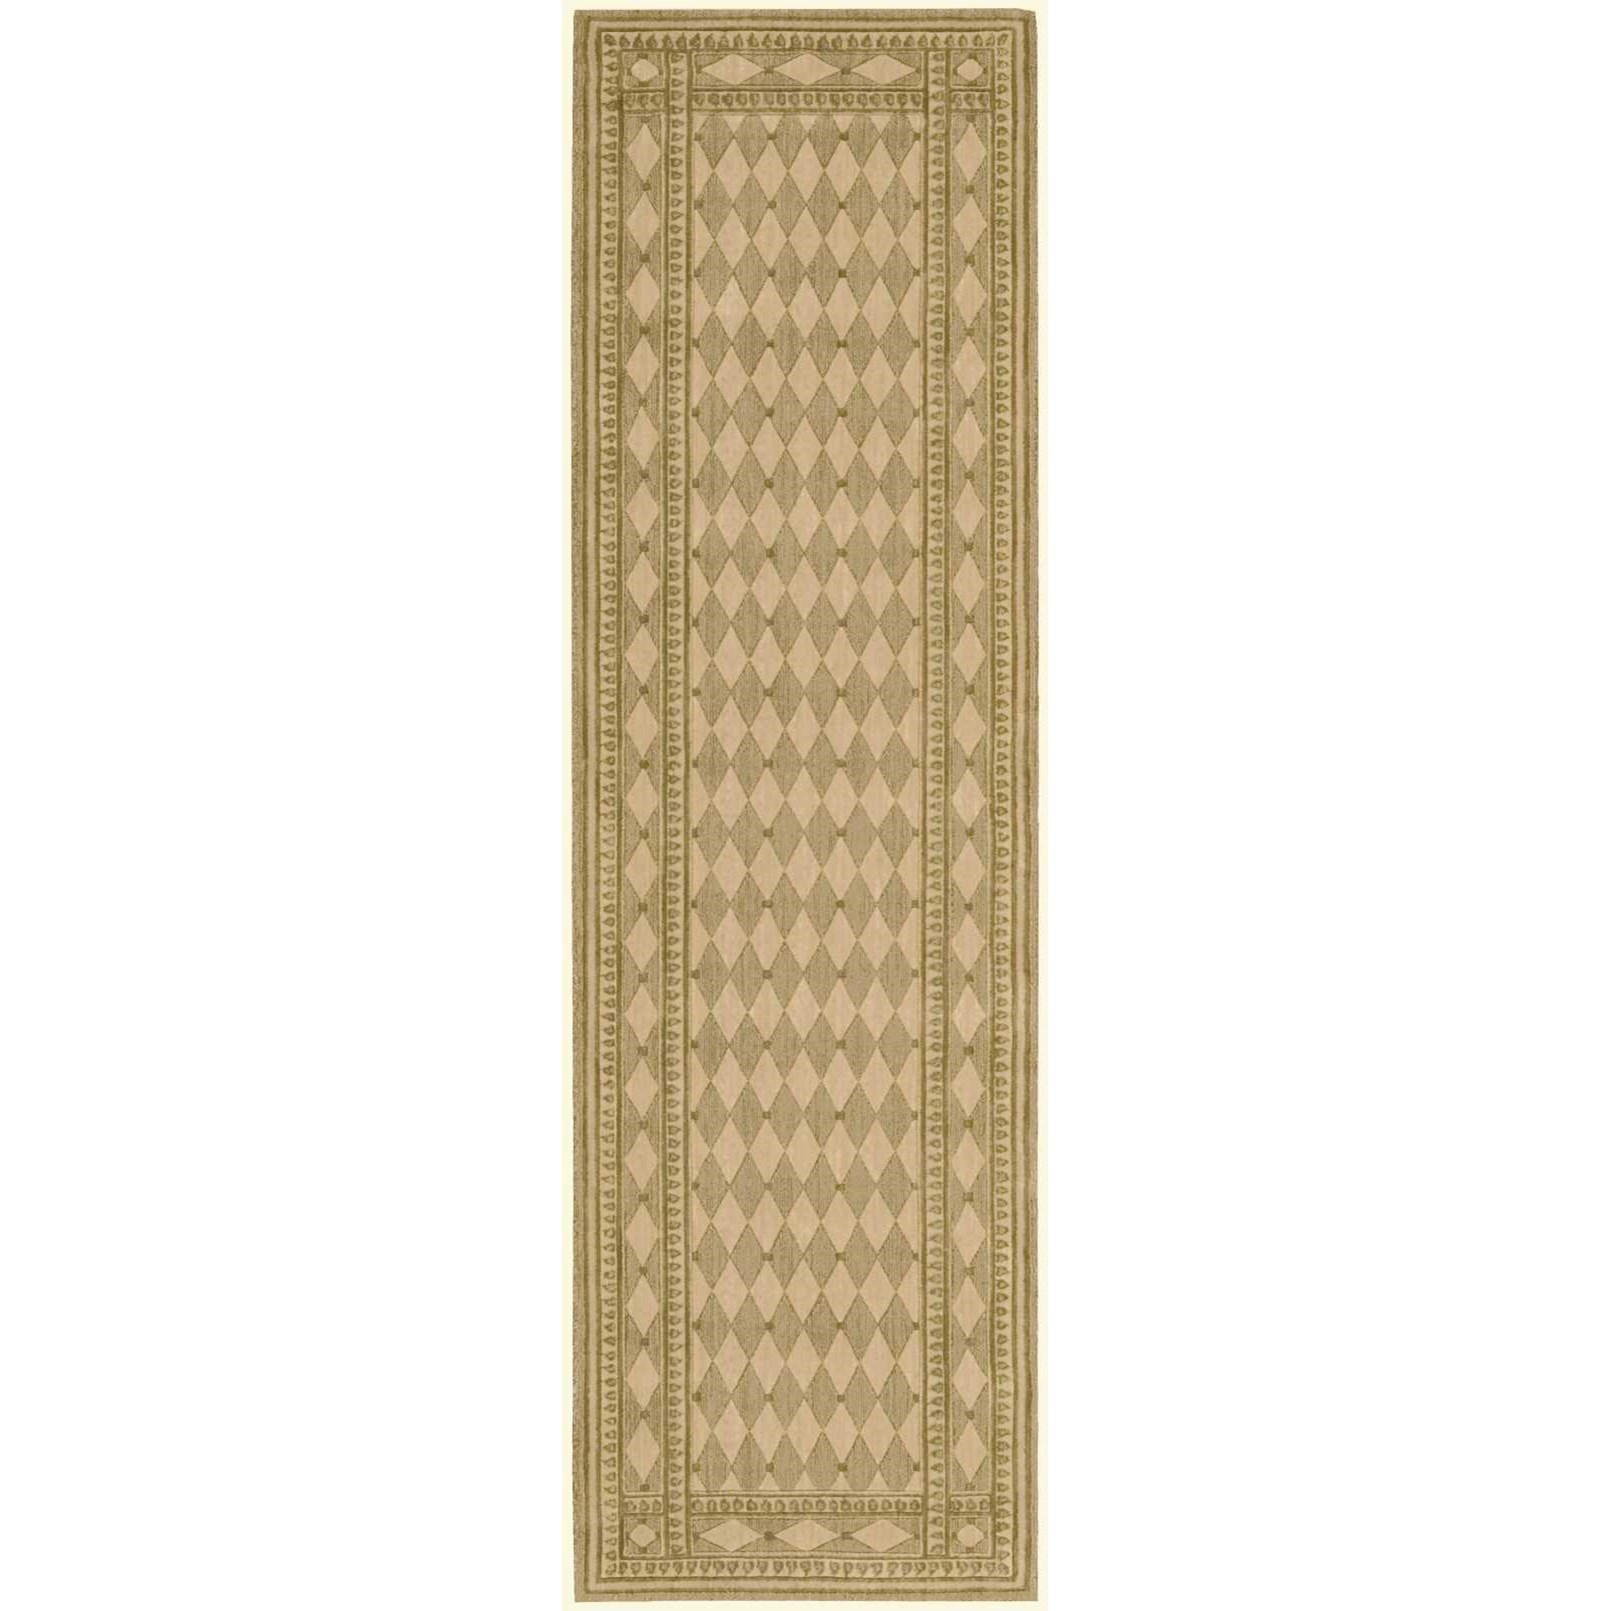 """Cosmopolitan 2'3"""" x 8' Honey Runner Rug by Nourison at Home Collections Furniture"""